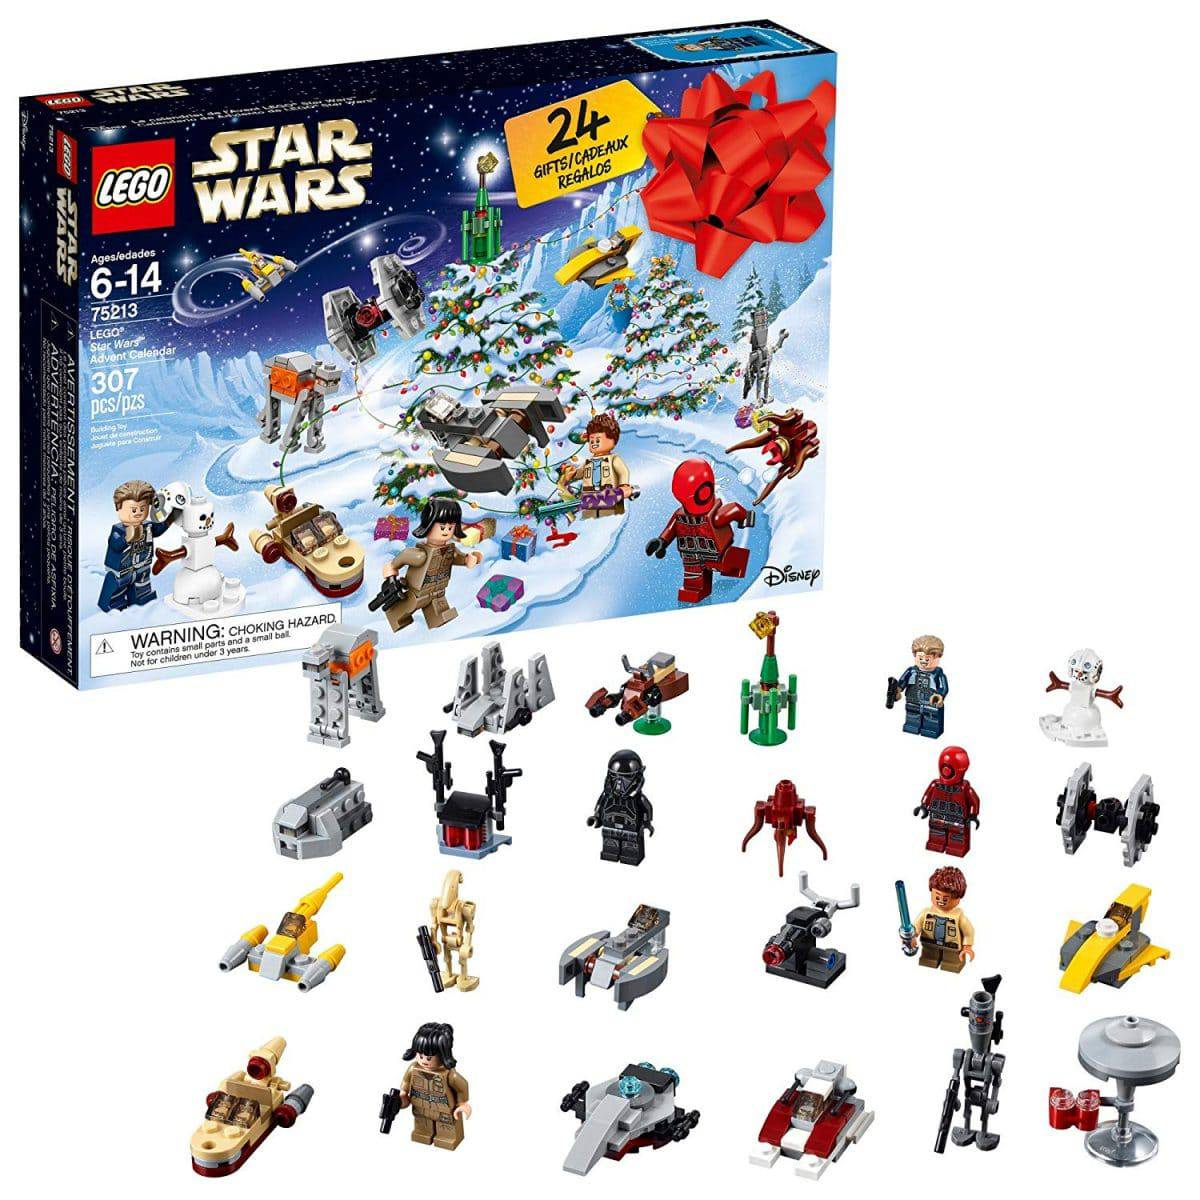 16 Pcs MINI FIGURES STAR WARS JEDI THE FORCE FIT LEGO STORM TROOPERS GIFT PARTY